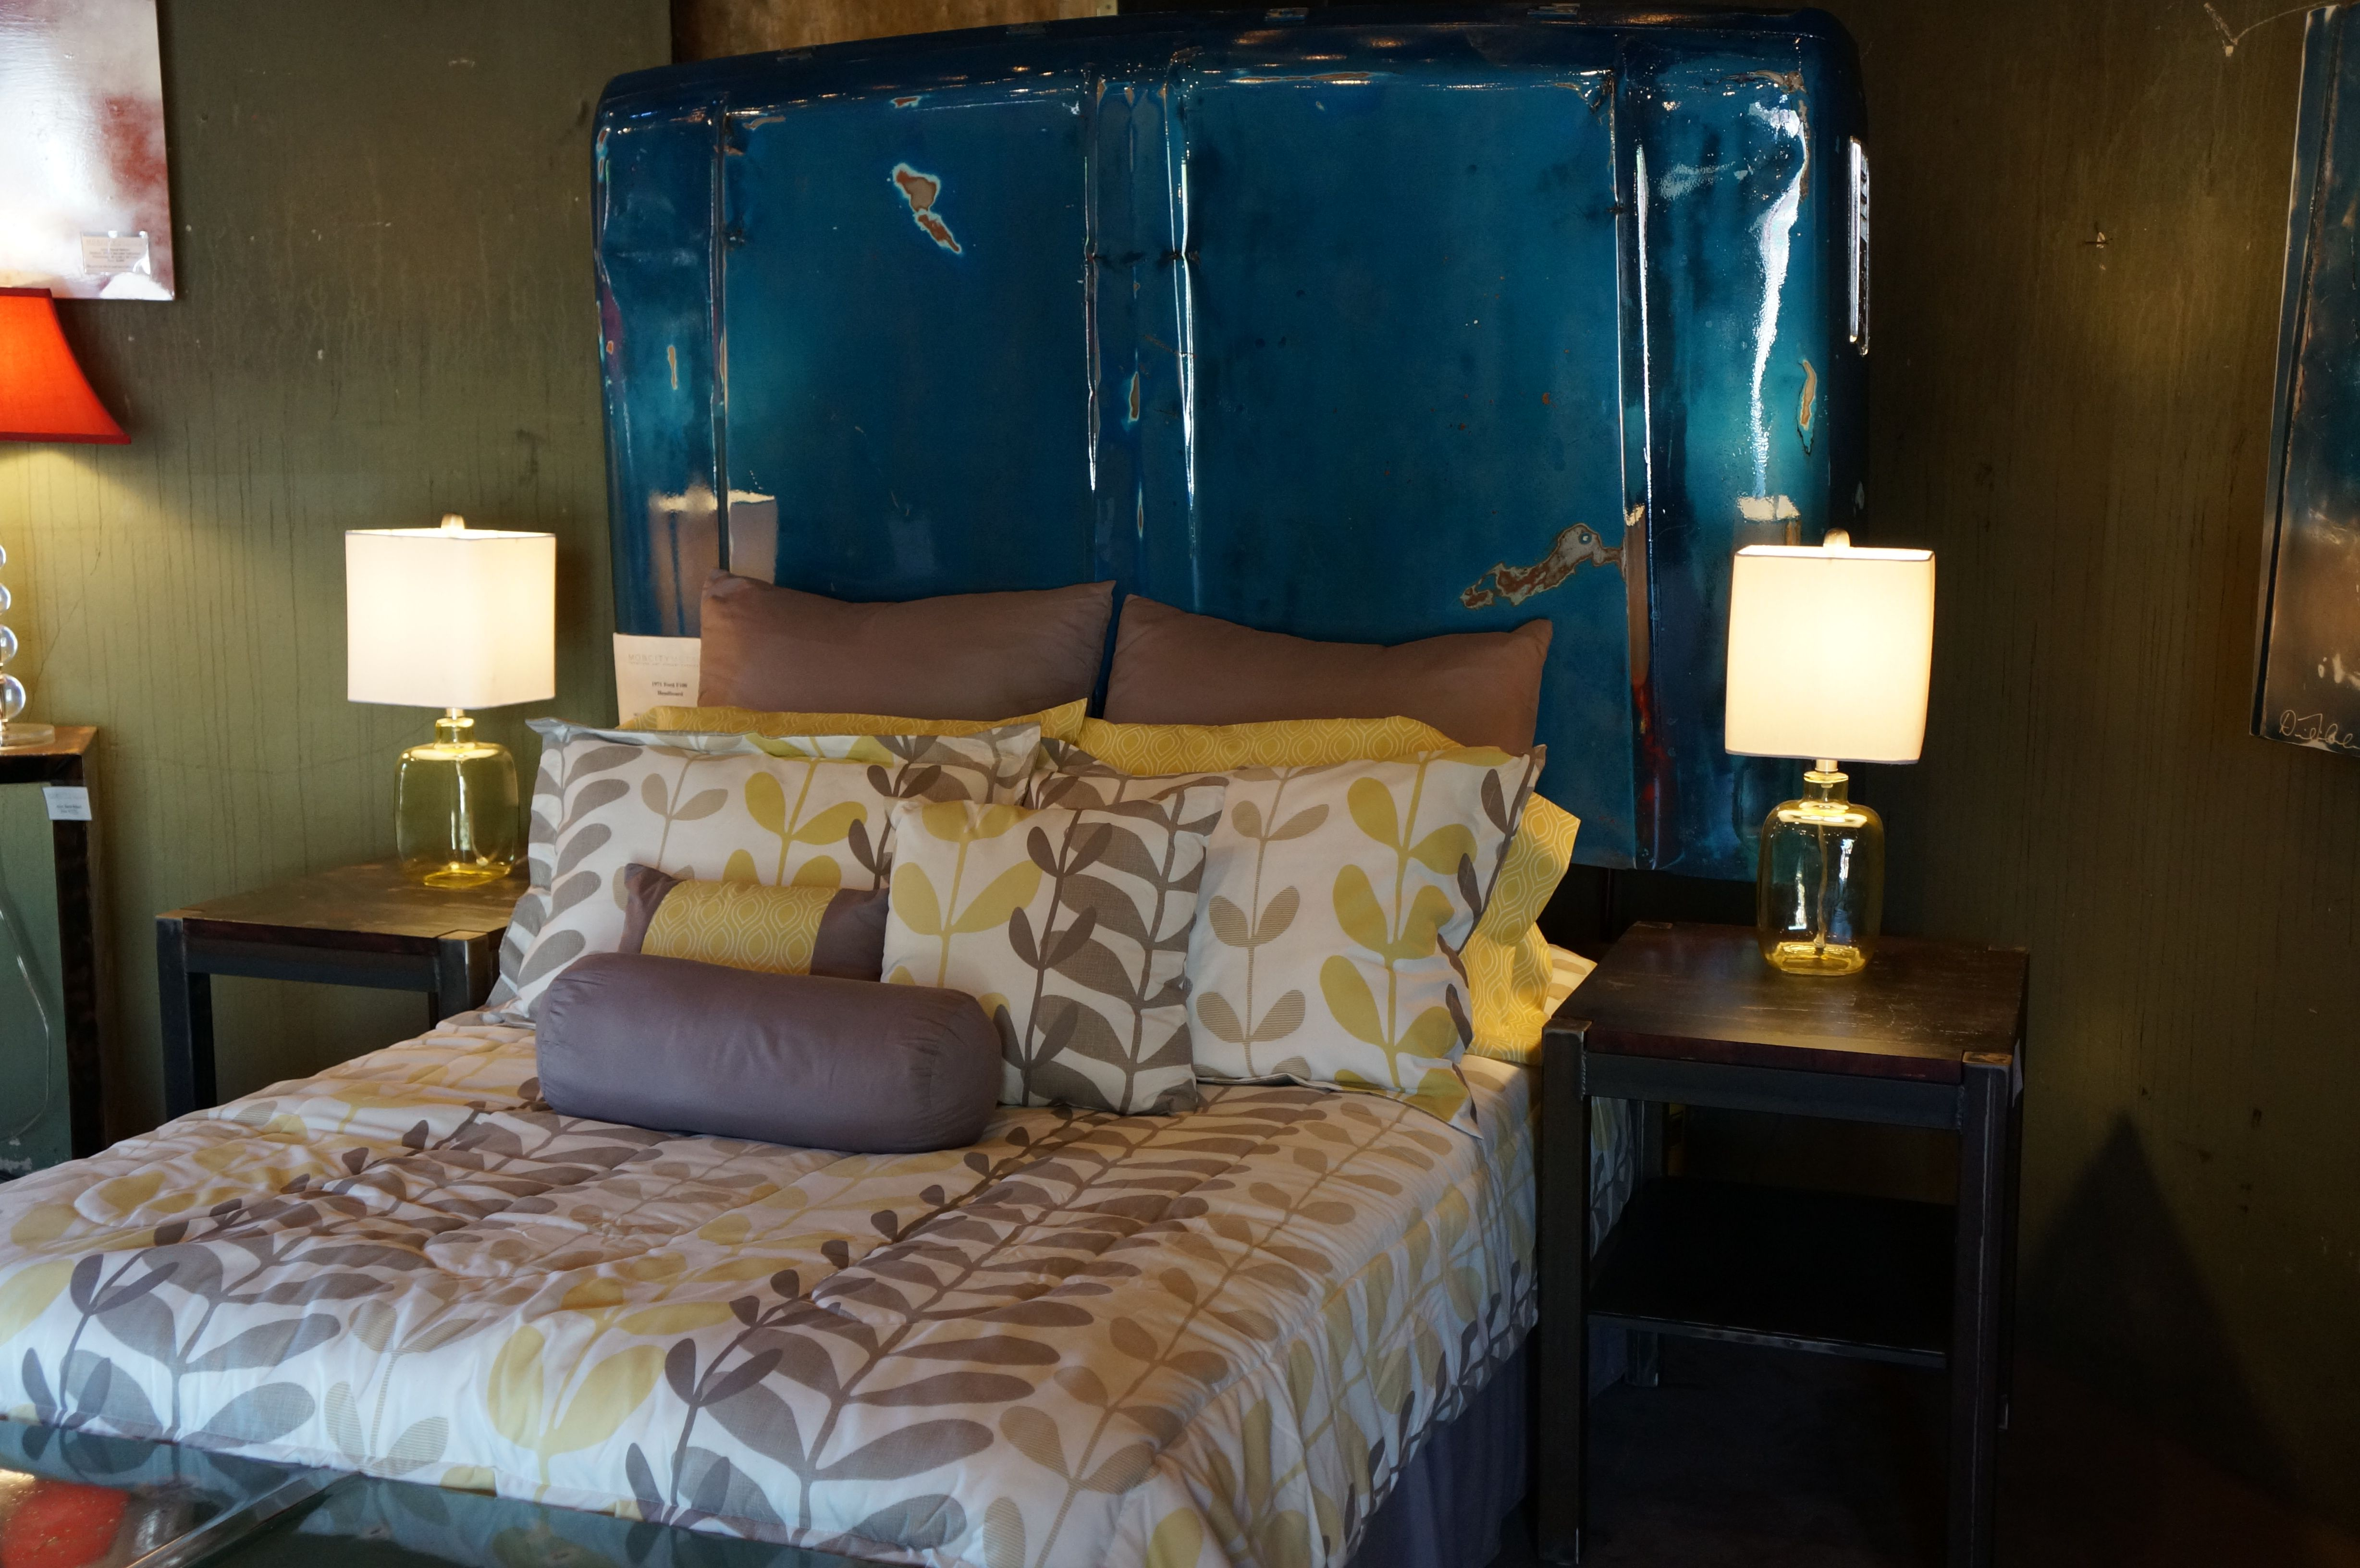 Buy A Handmade Industrial Metal Carhood Headboard Made To